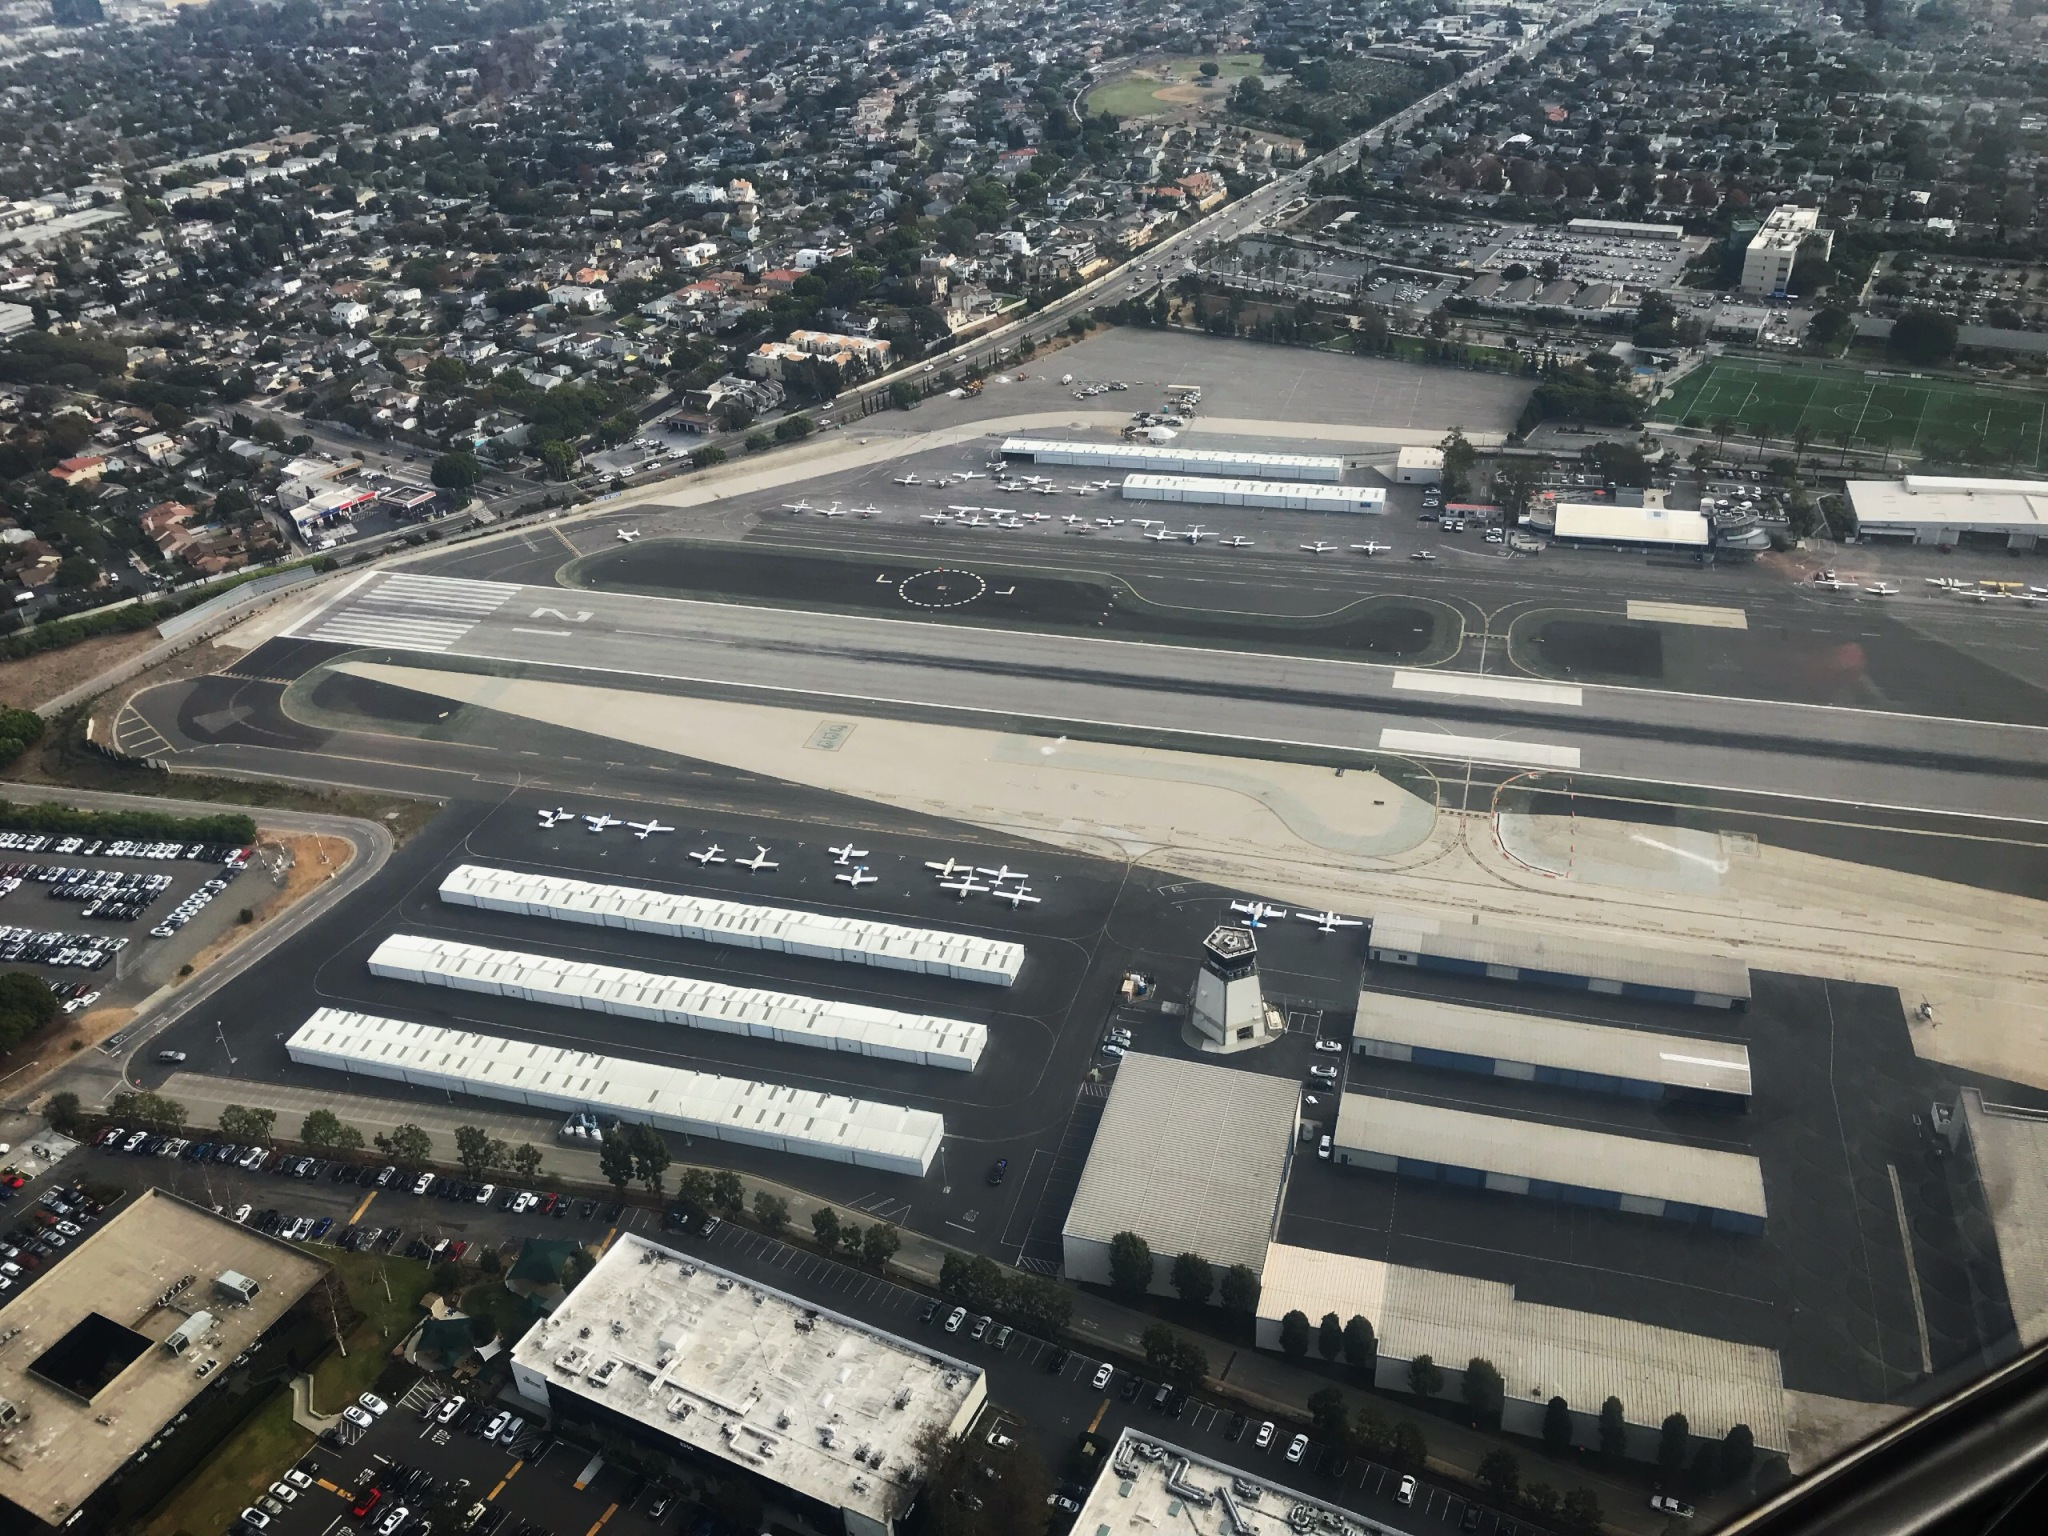 Santa Monica Airport view from helicopter